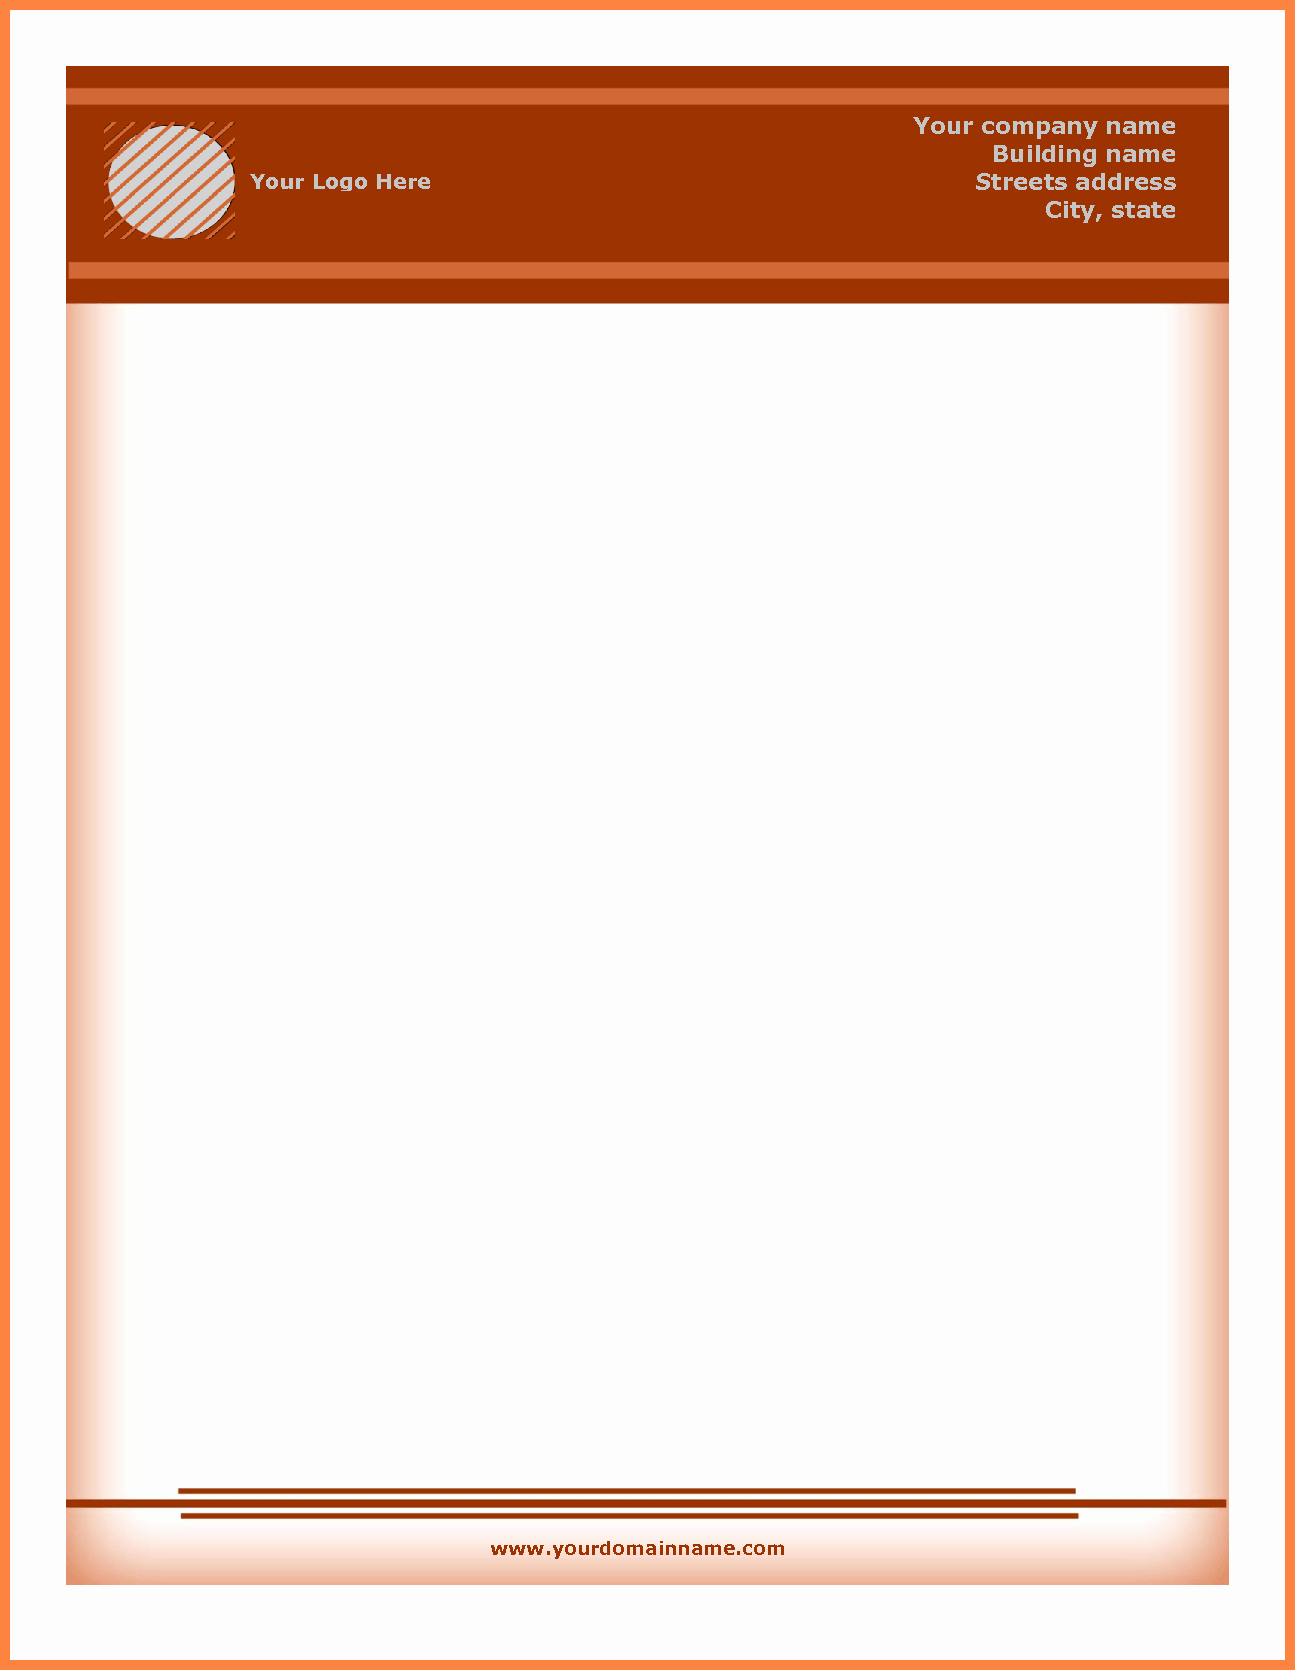 Business Letterhead Templates Free Download Luxury 11 Letterhead Templates